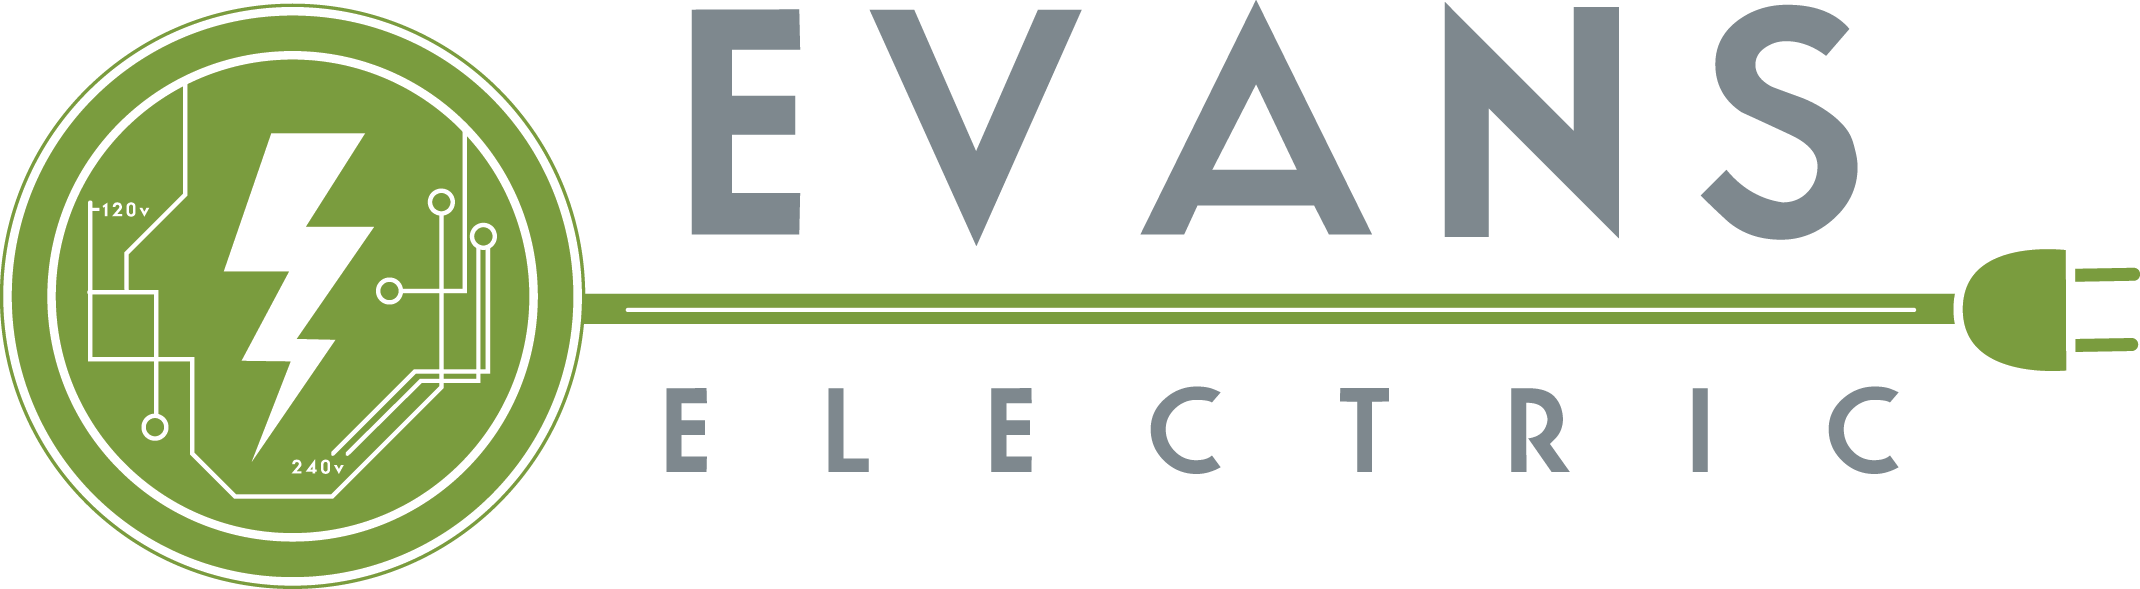 Evans Electric in Chico, California